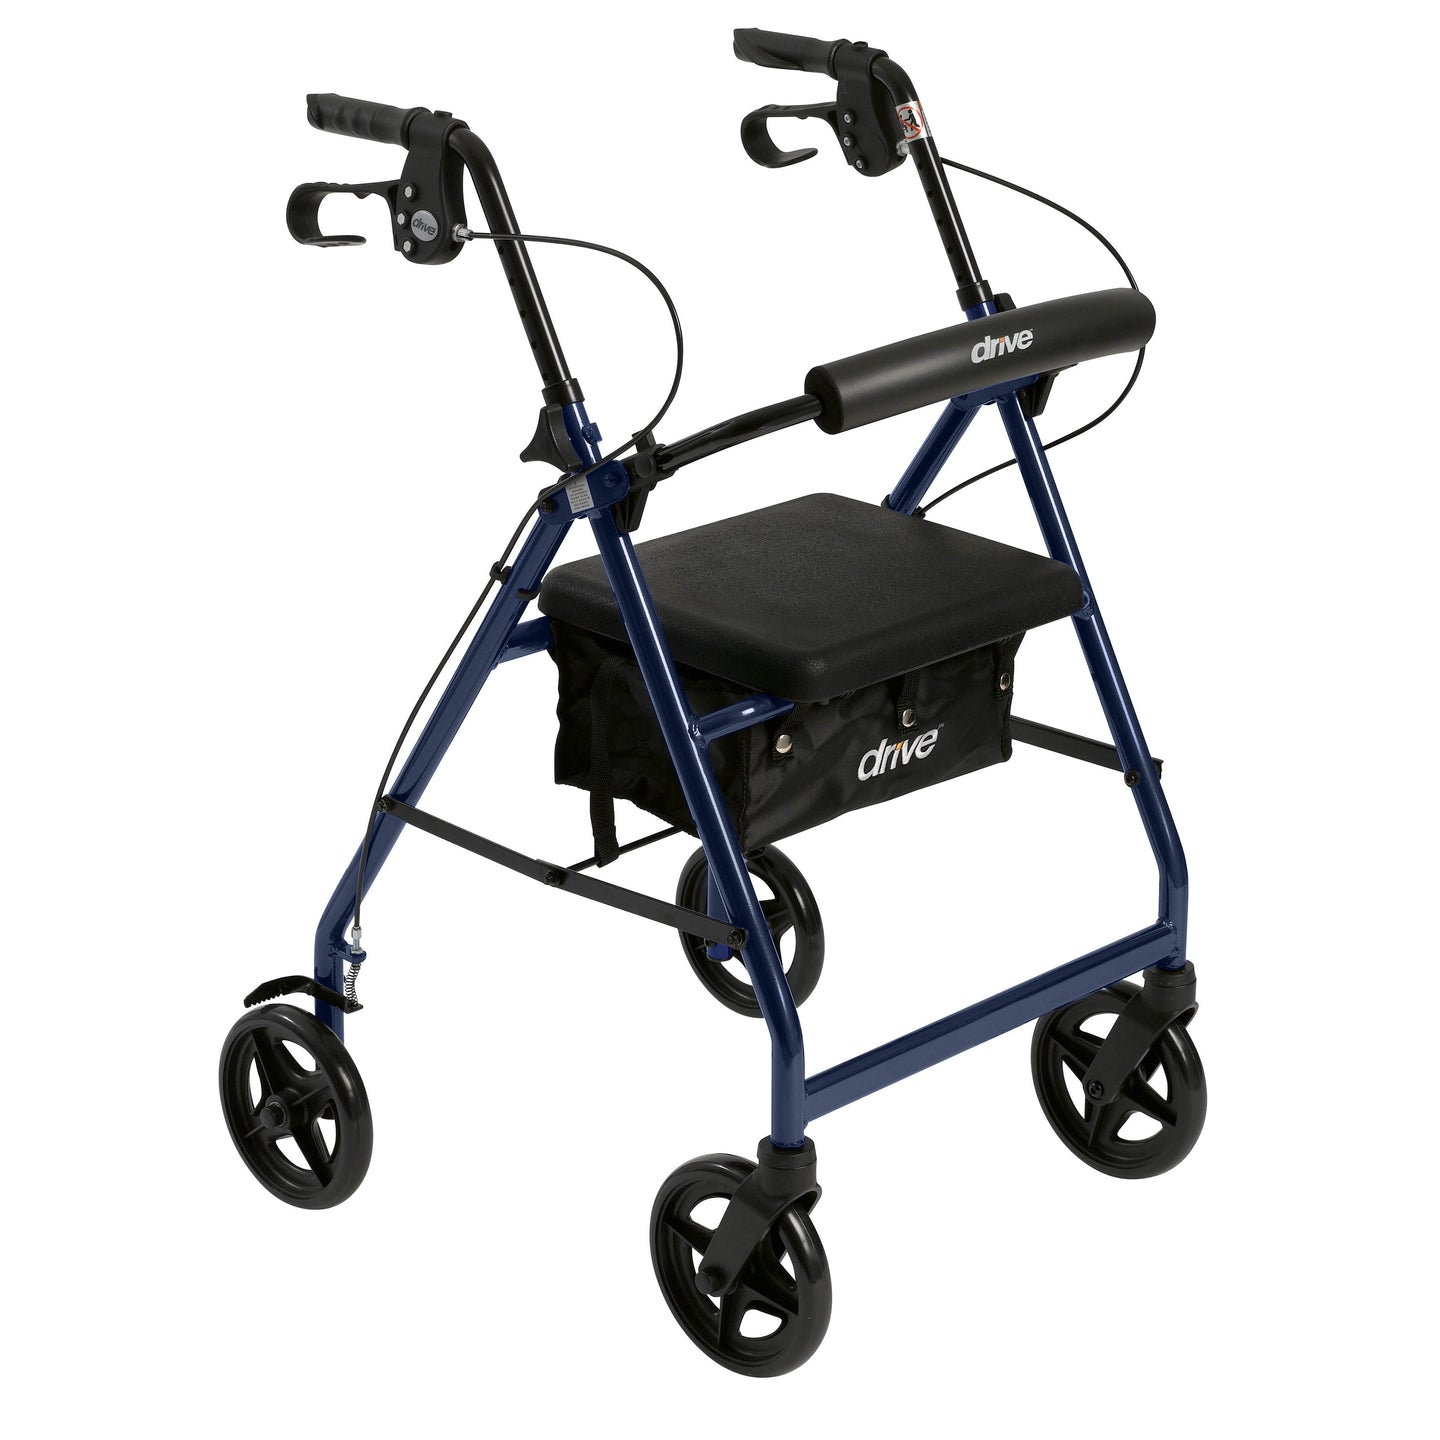 Drive Aluminum Rollator Rolling Walker with Fold Up and Removable Back Support and Padded Seat- Blue